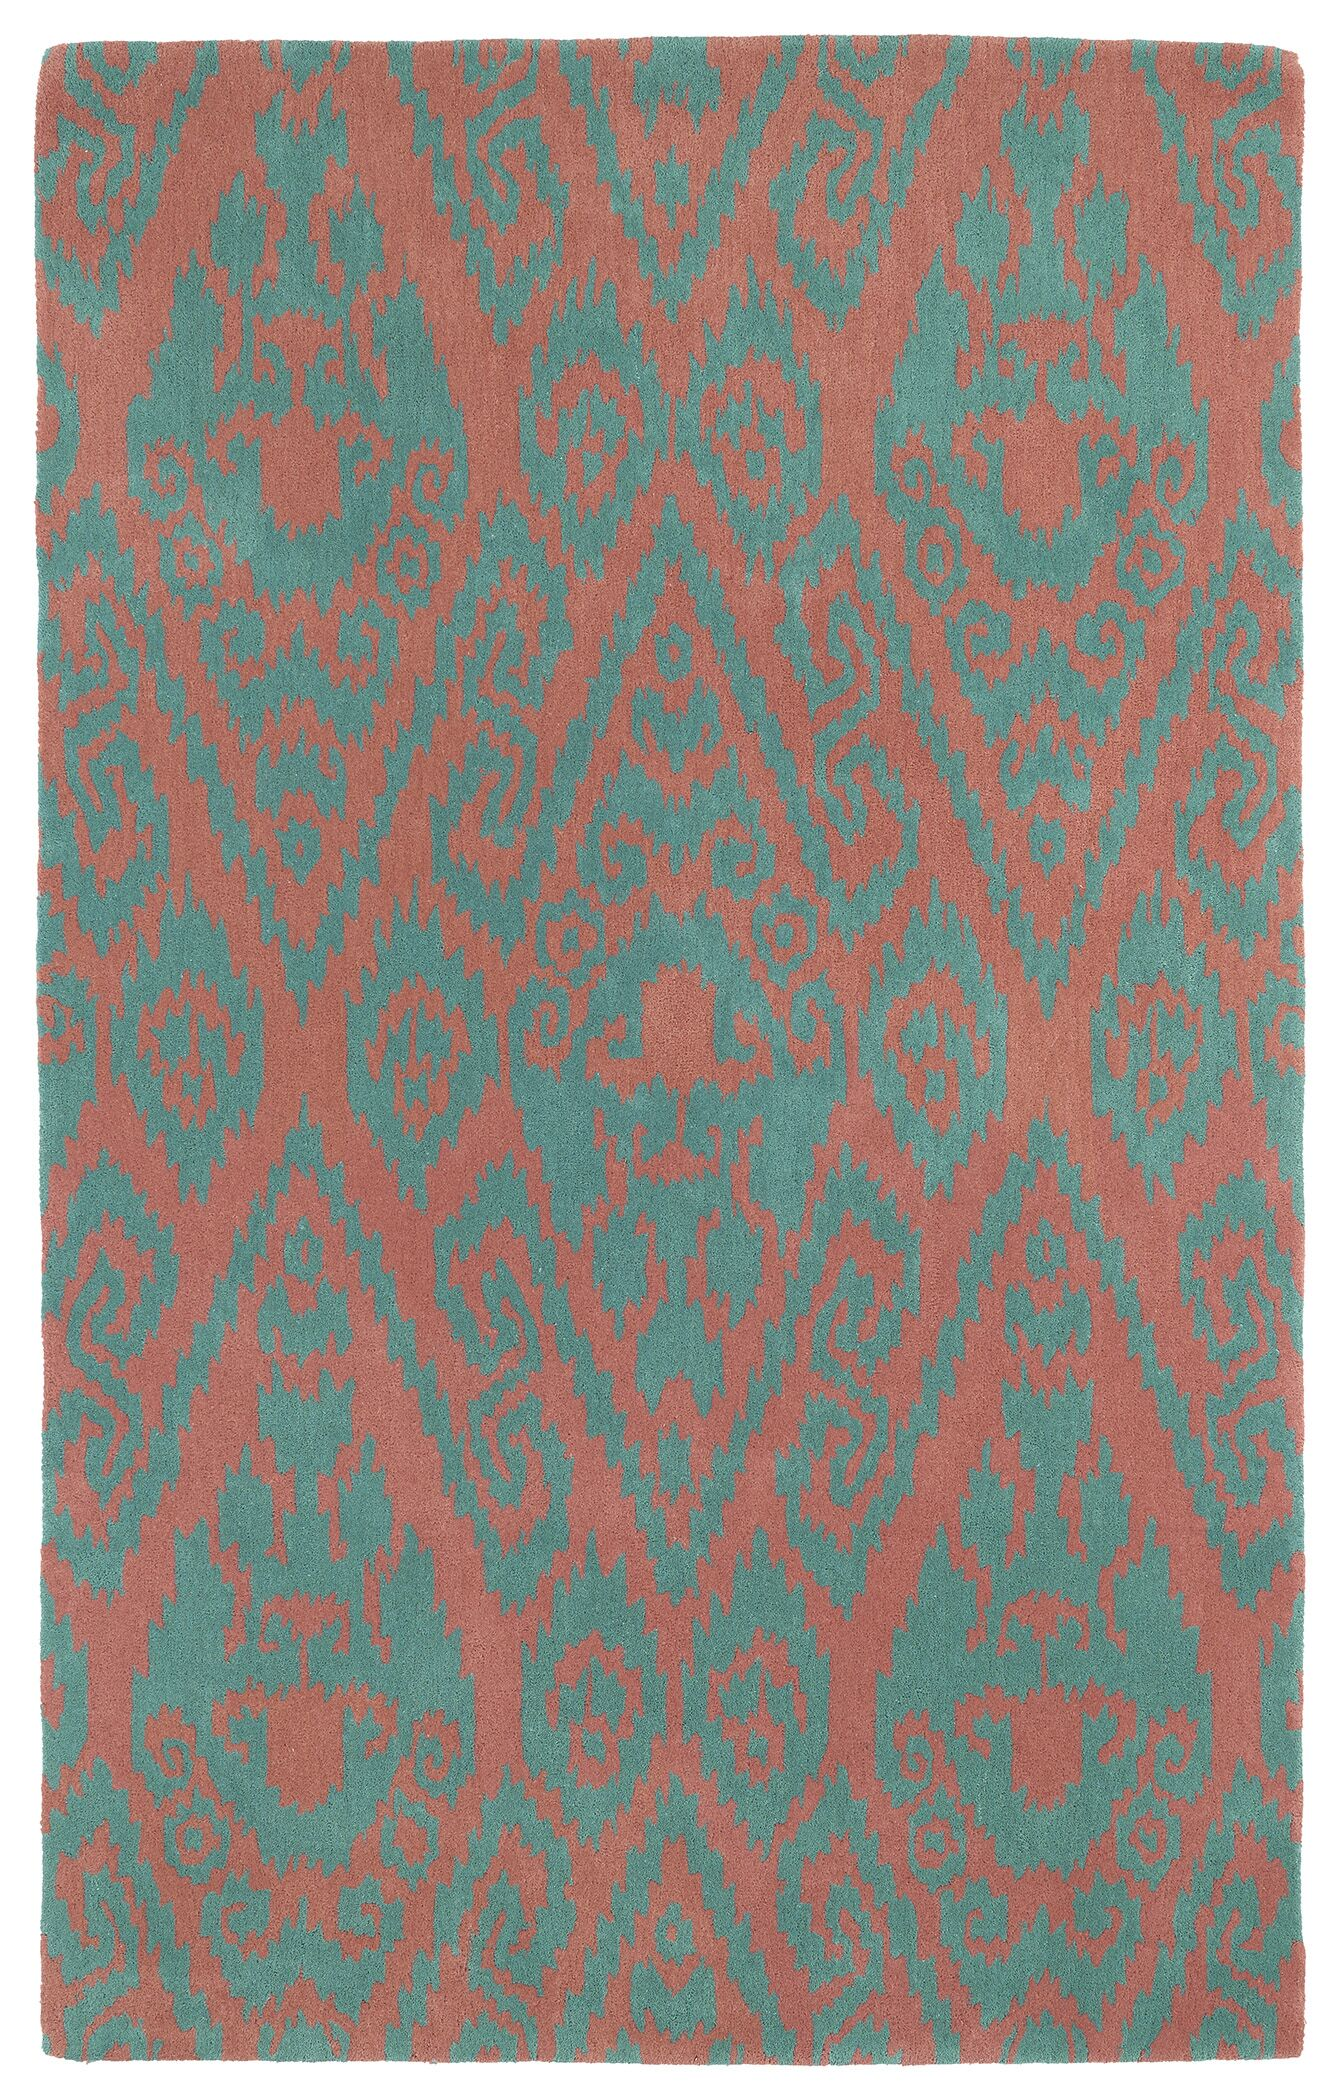 Roskilde Watermelon Area Rug Rug Size: Rectangle 5' x 7'9